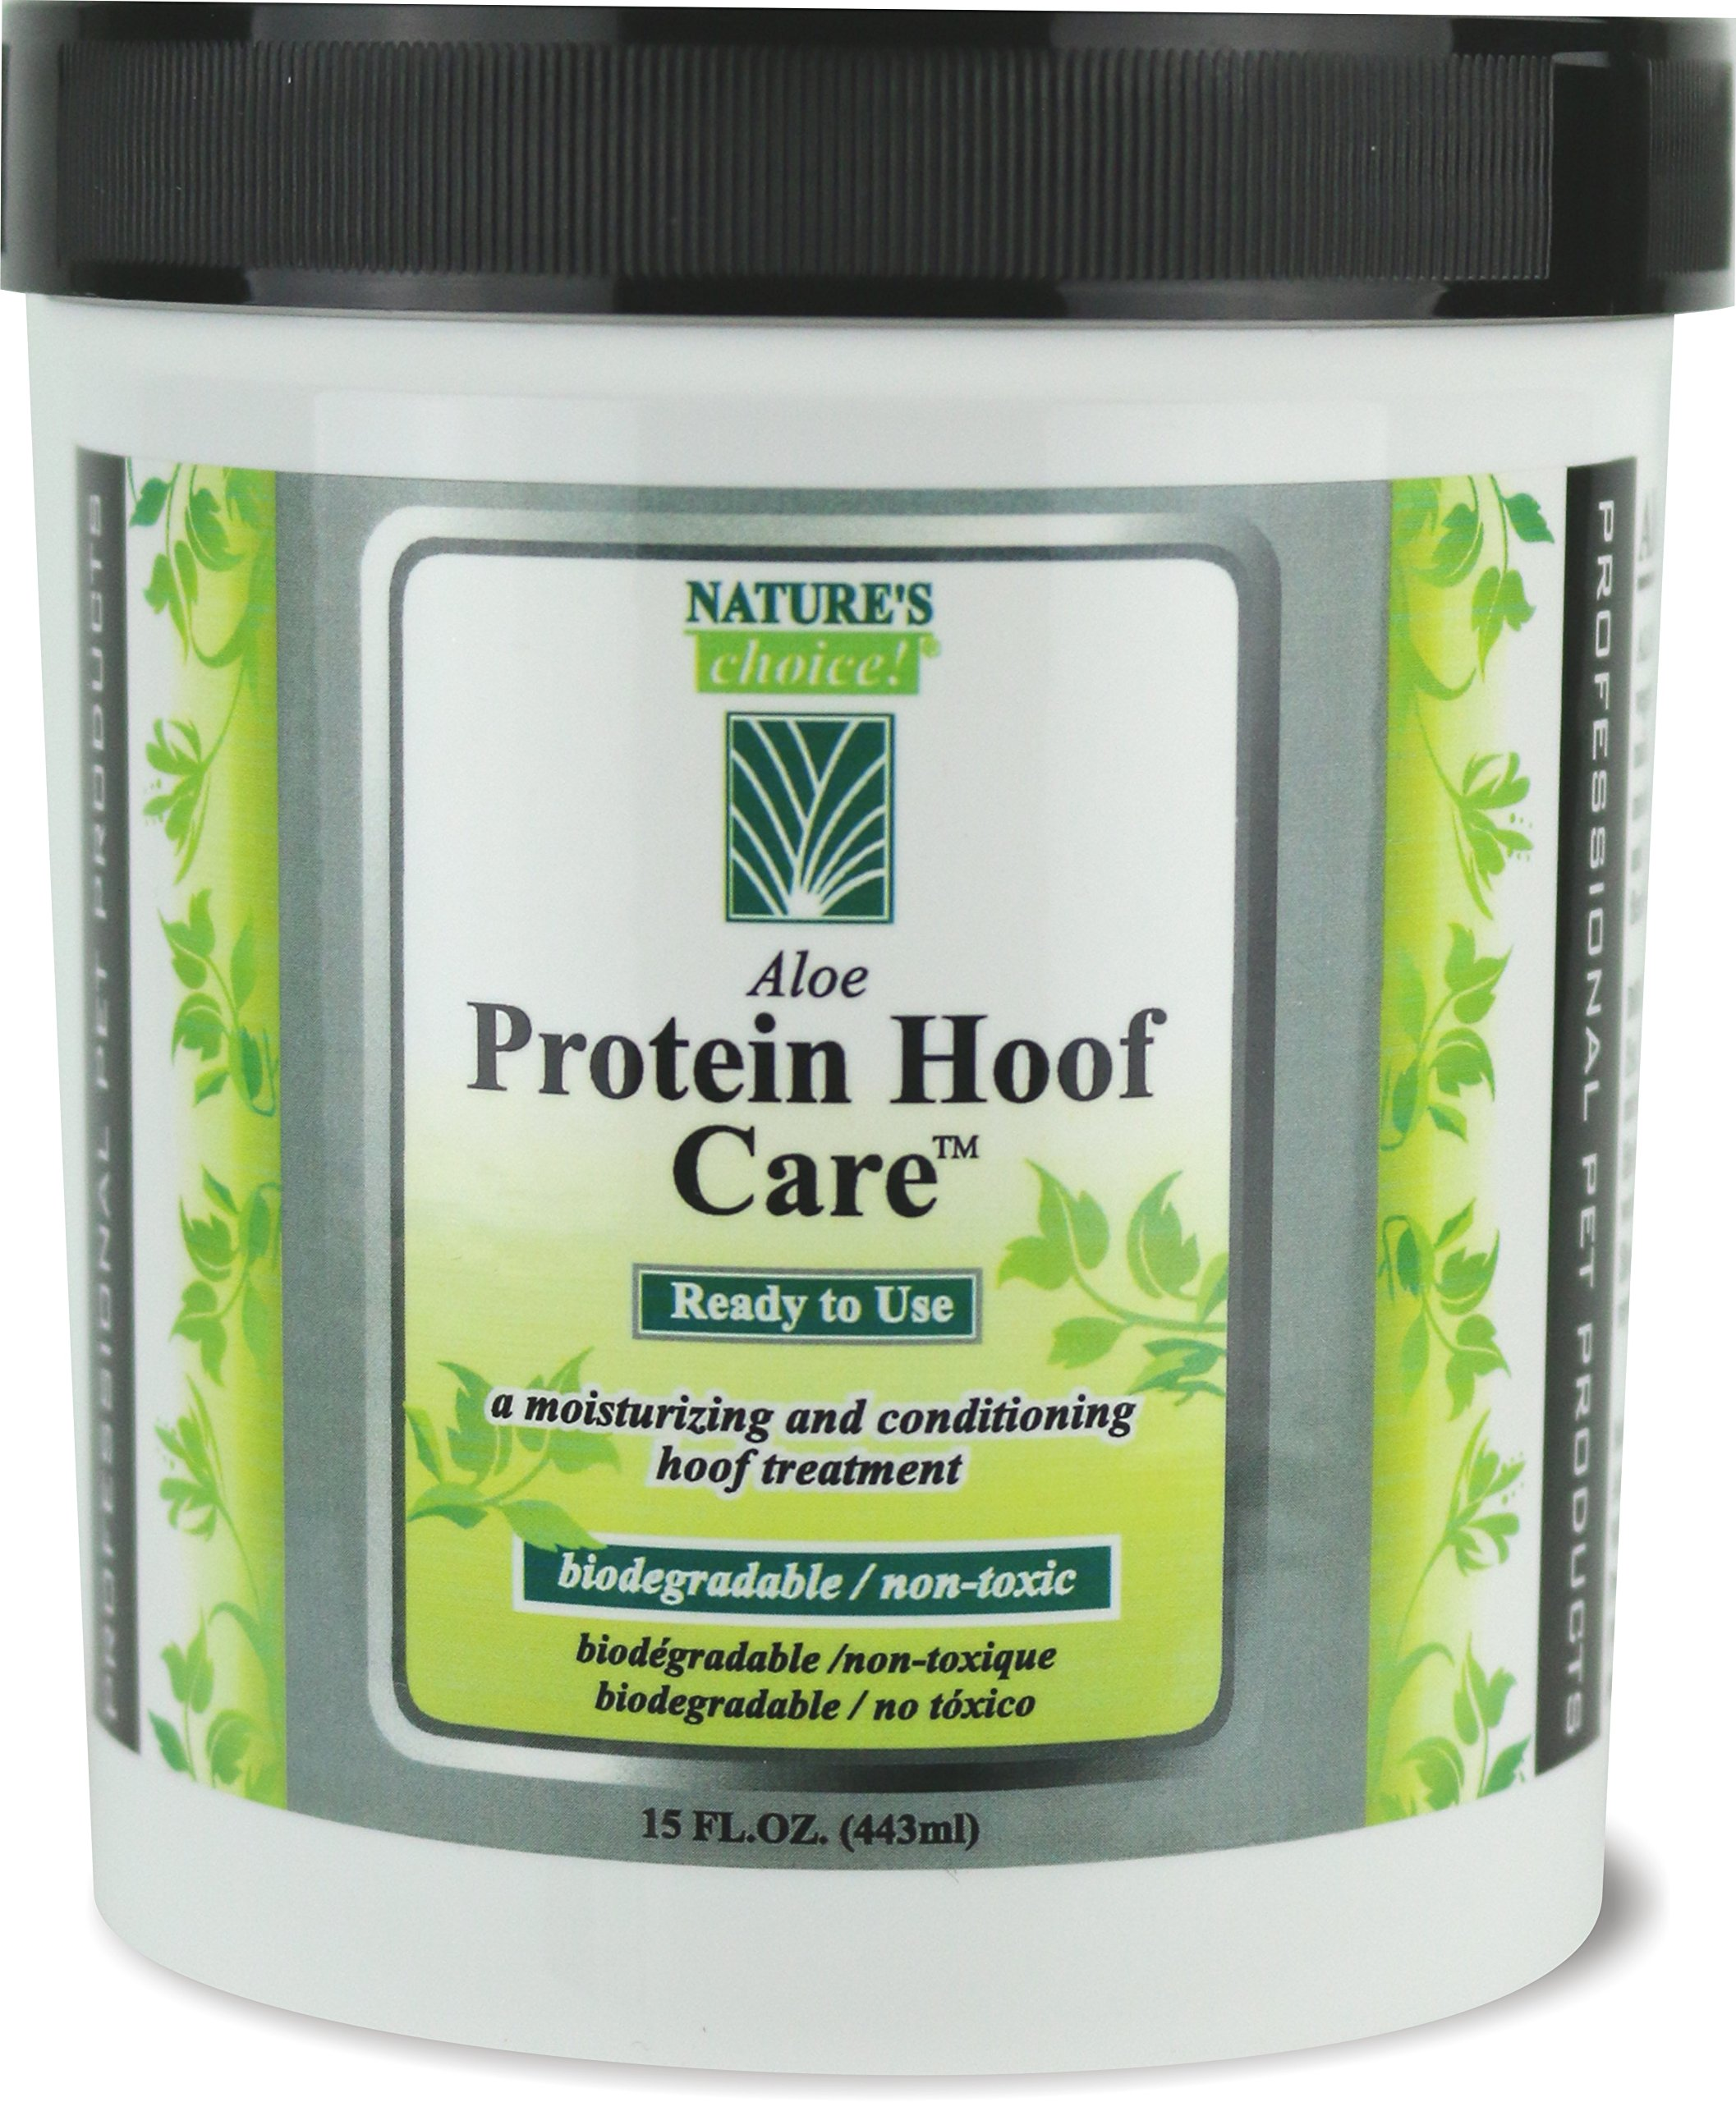 Nature's Choice Aloe Protein Hoof Care for Horse